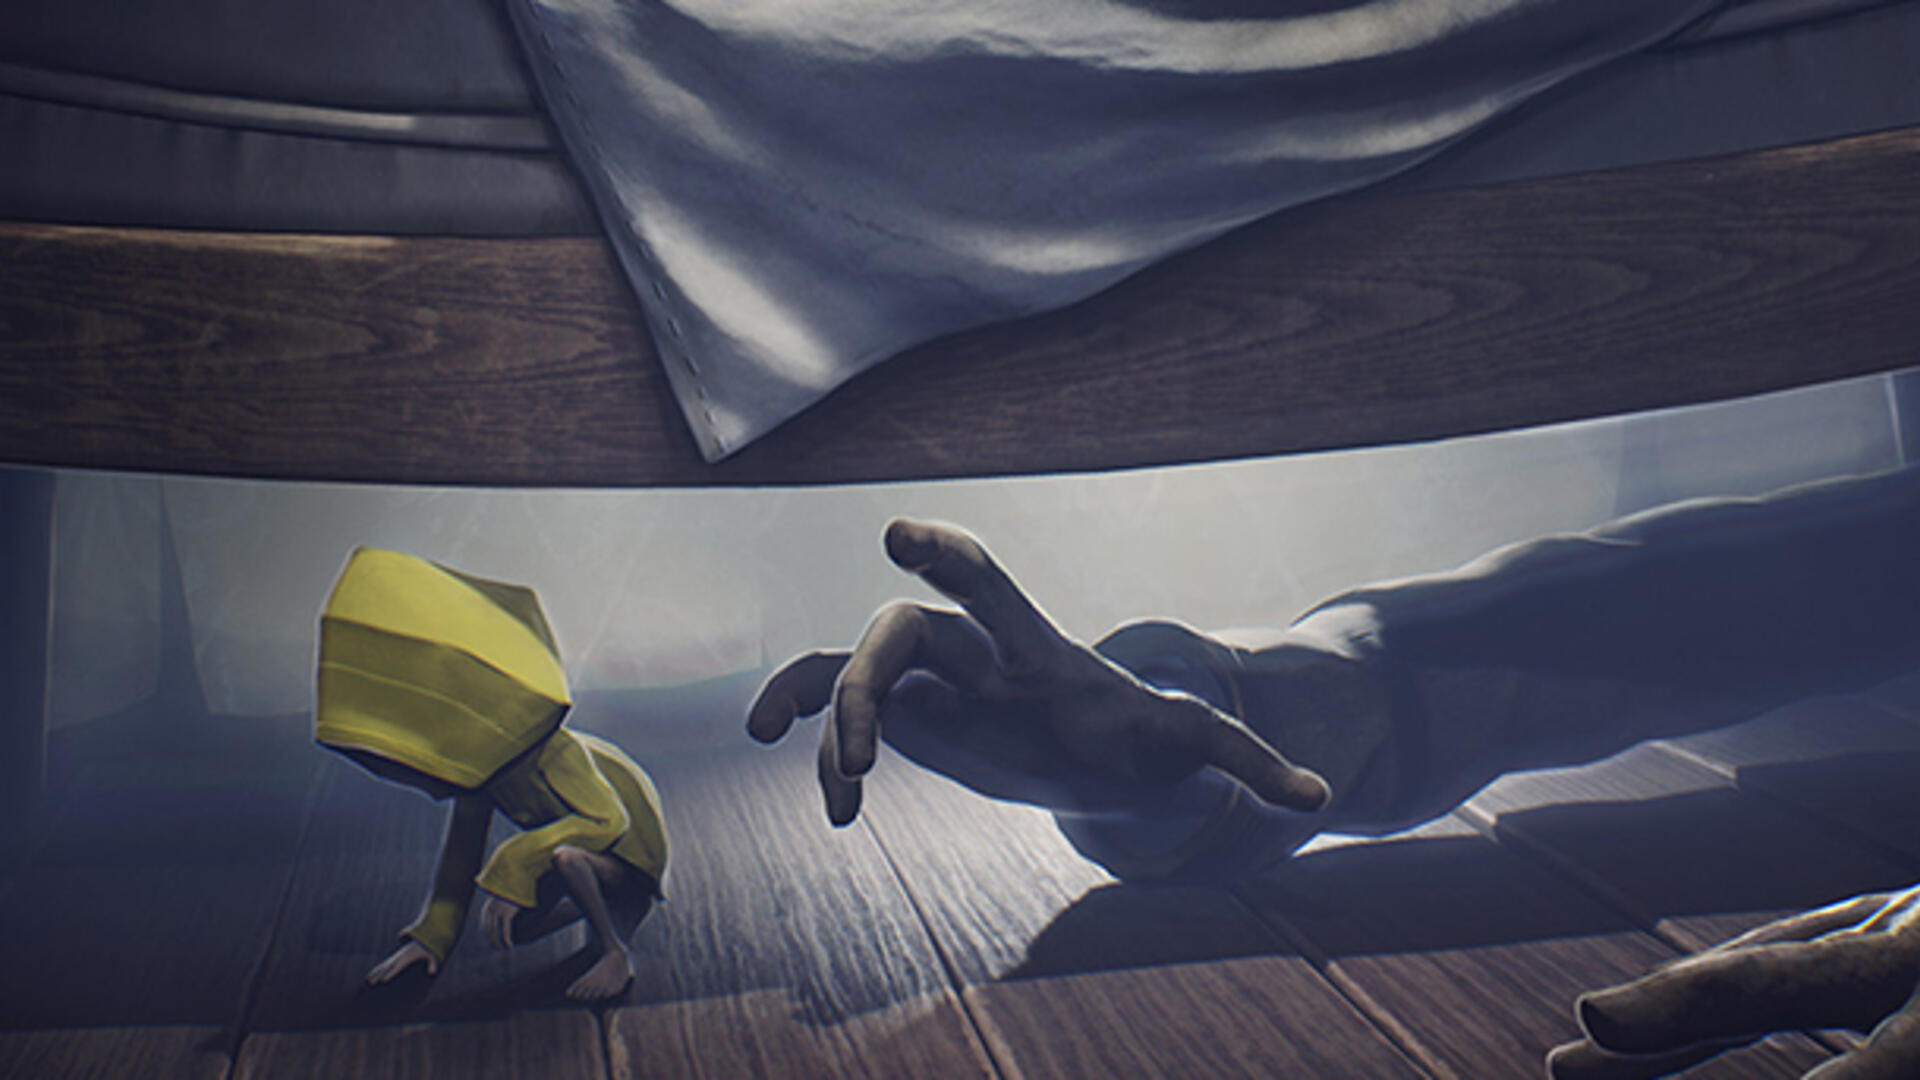 Little Nightmares Imagines Horror Through a Child's Eyes